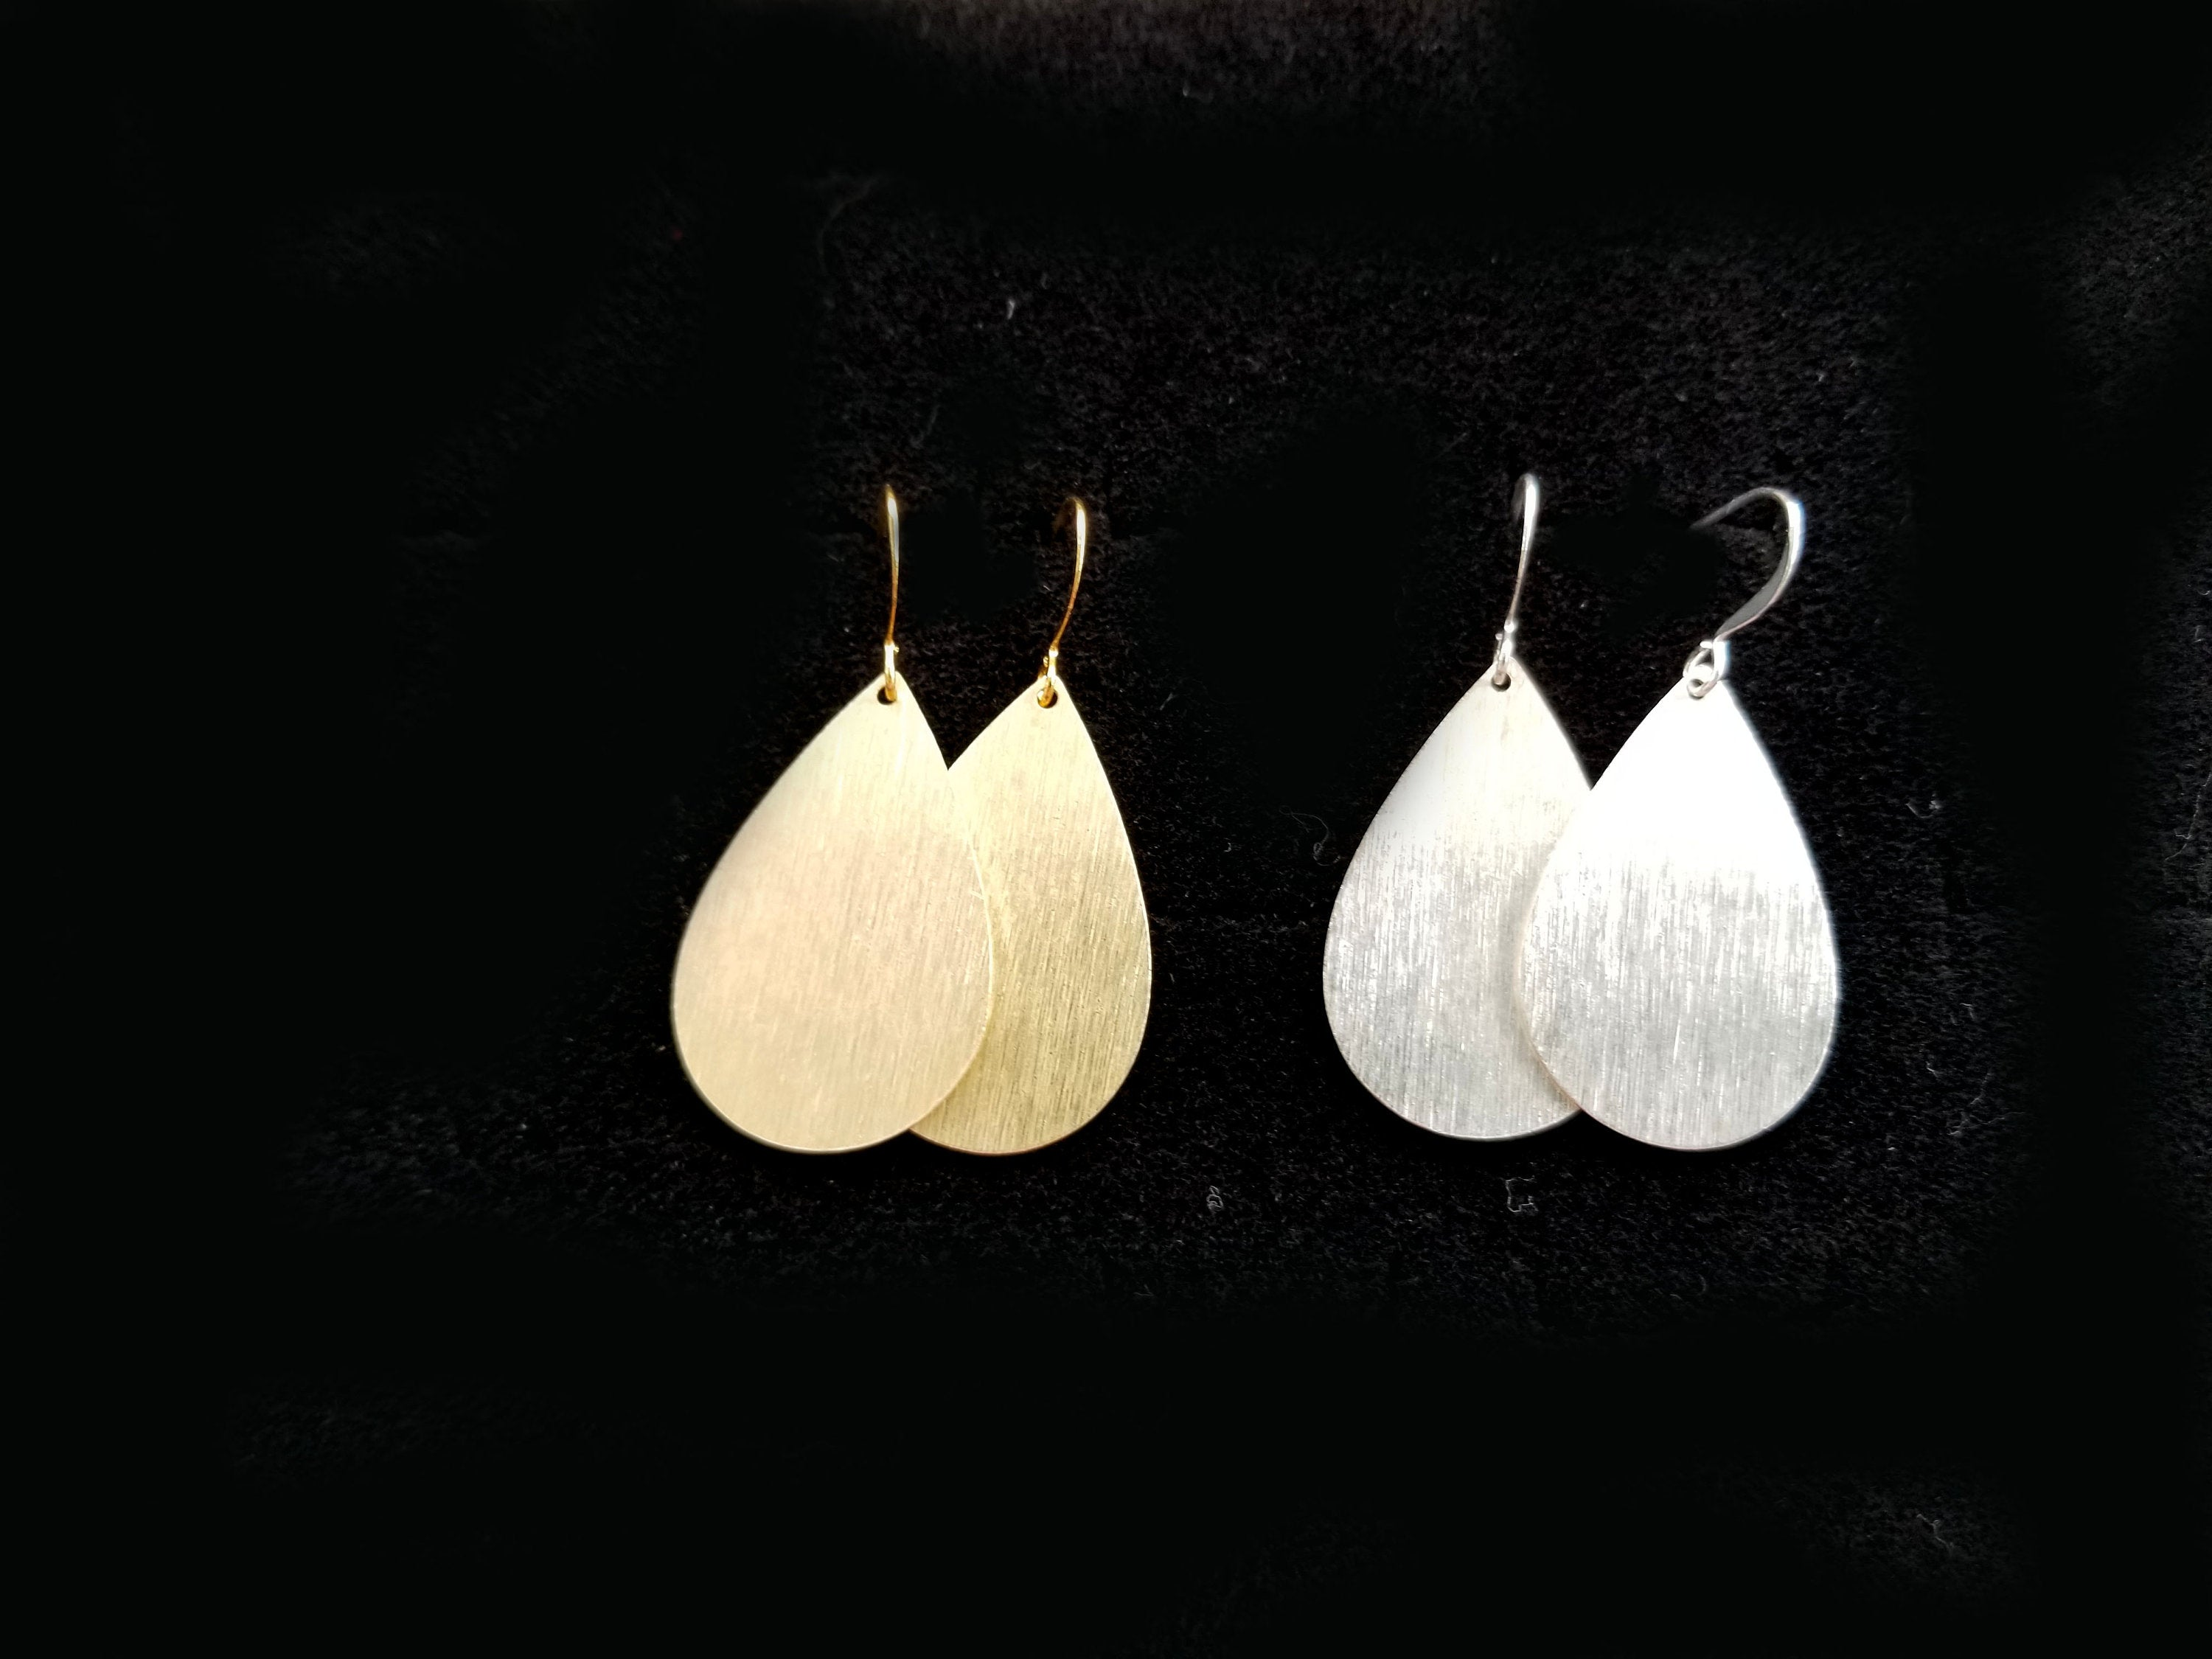 Brushed silver or gold teardrop earrings, brushed silver or gold light-weight earrings